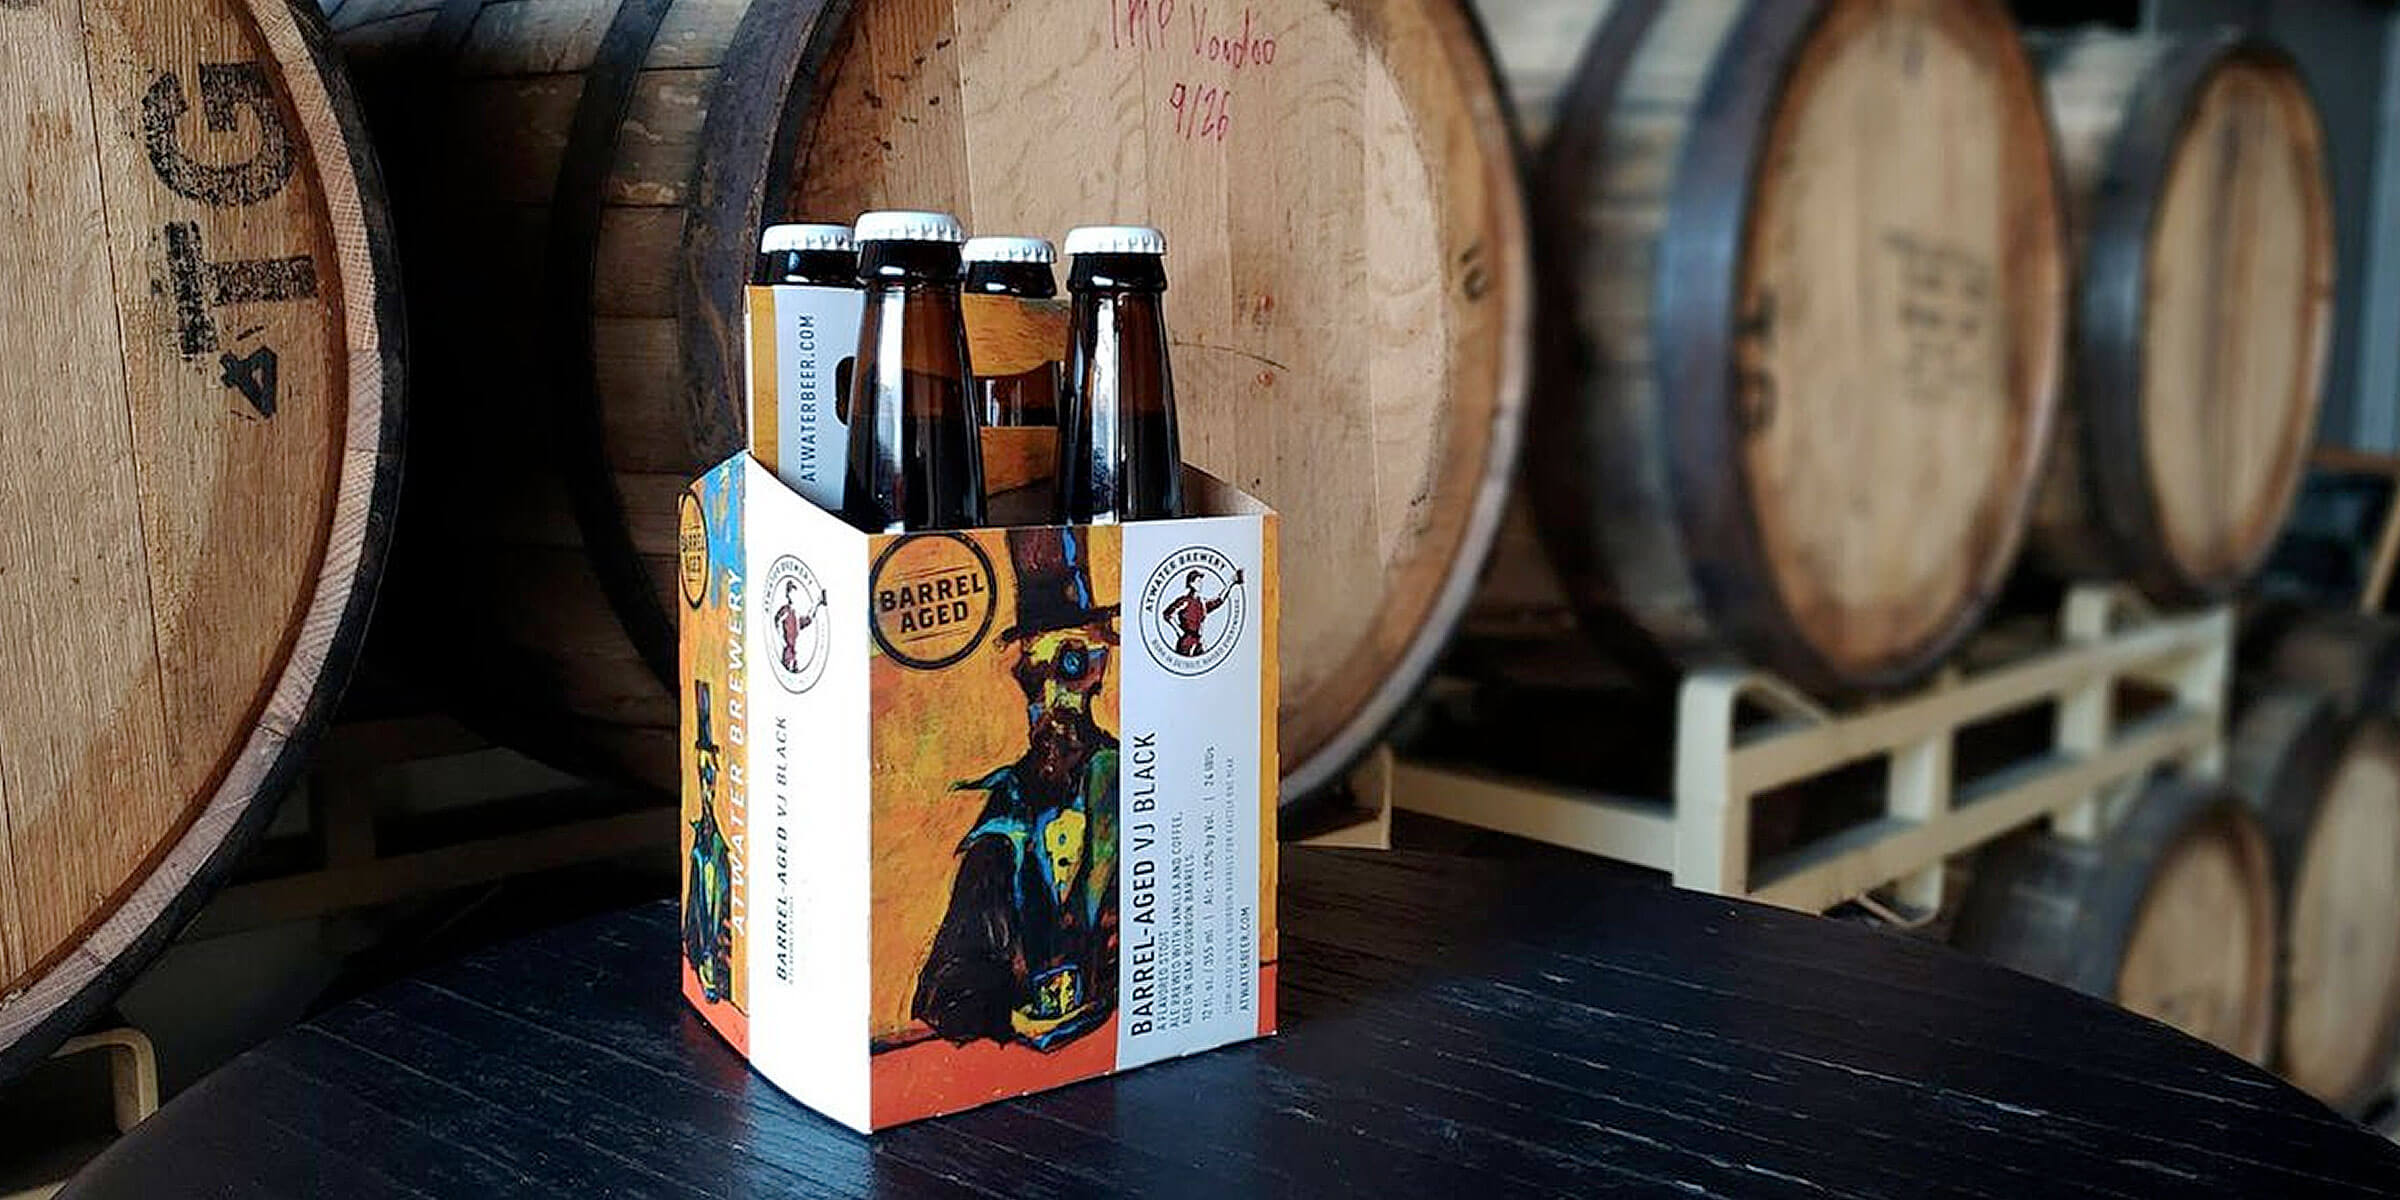 Atwater Brewery is tapping its most successful aged beer, the 2020 Barrel-Aged VJ Black Imperial Stout at its Detroit, Grosse Point and Grand Rapids taprooms.